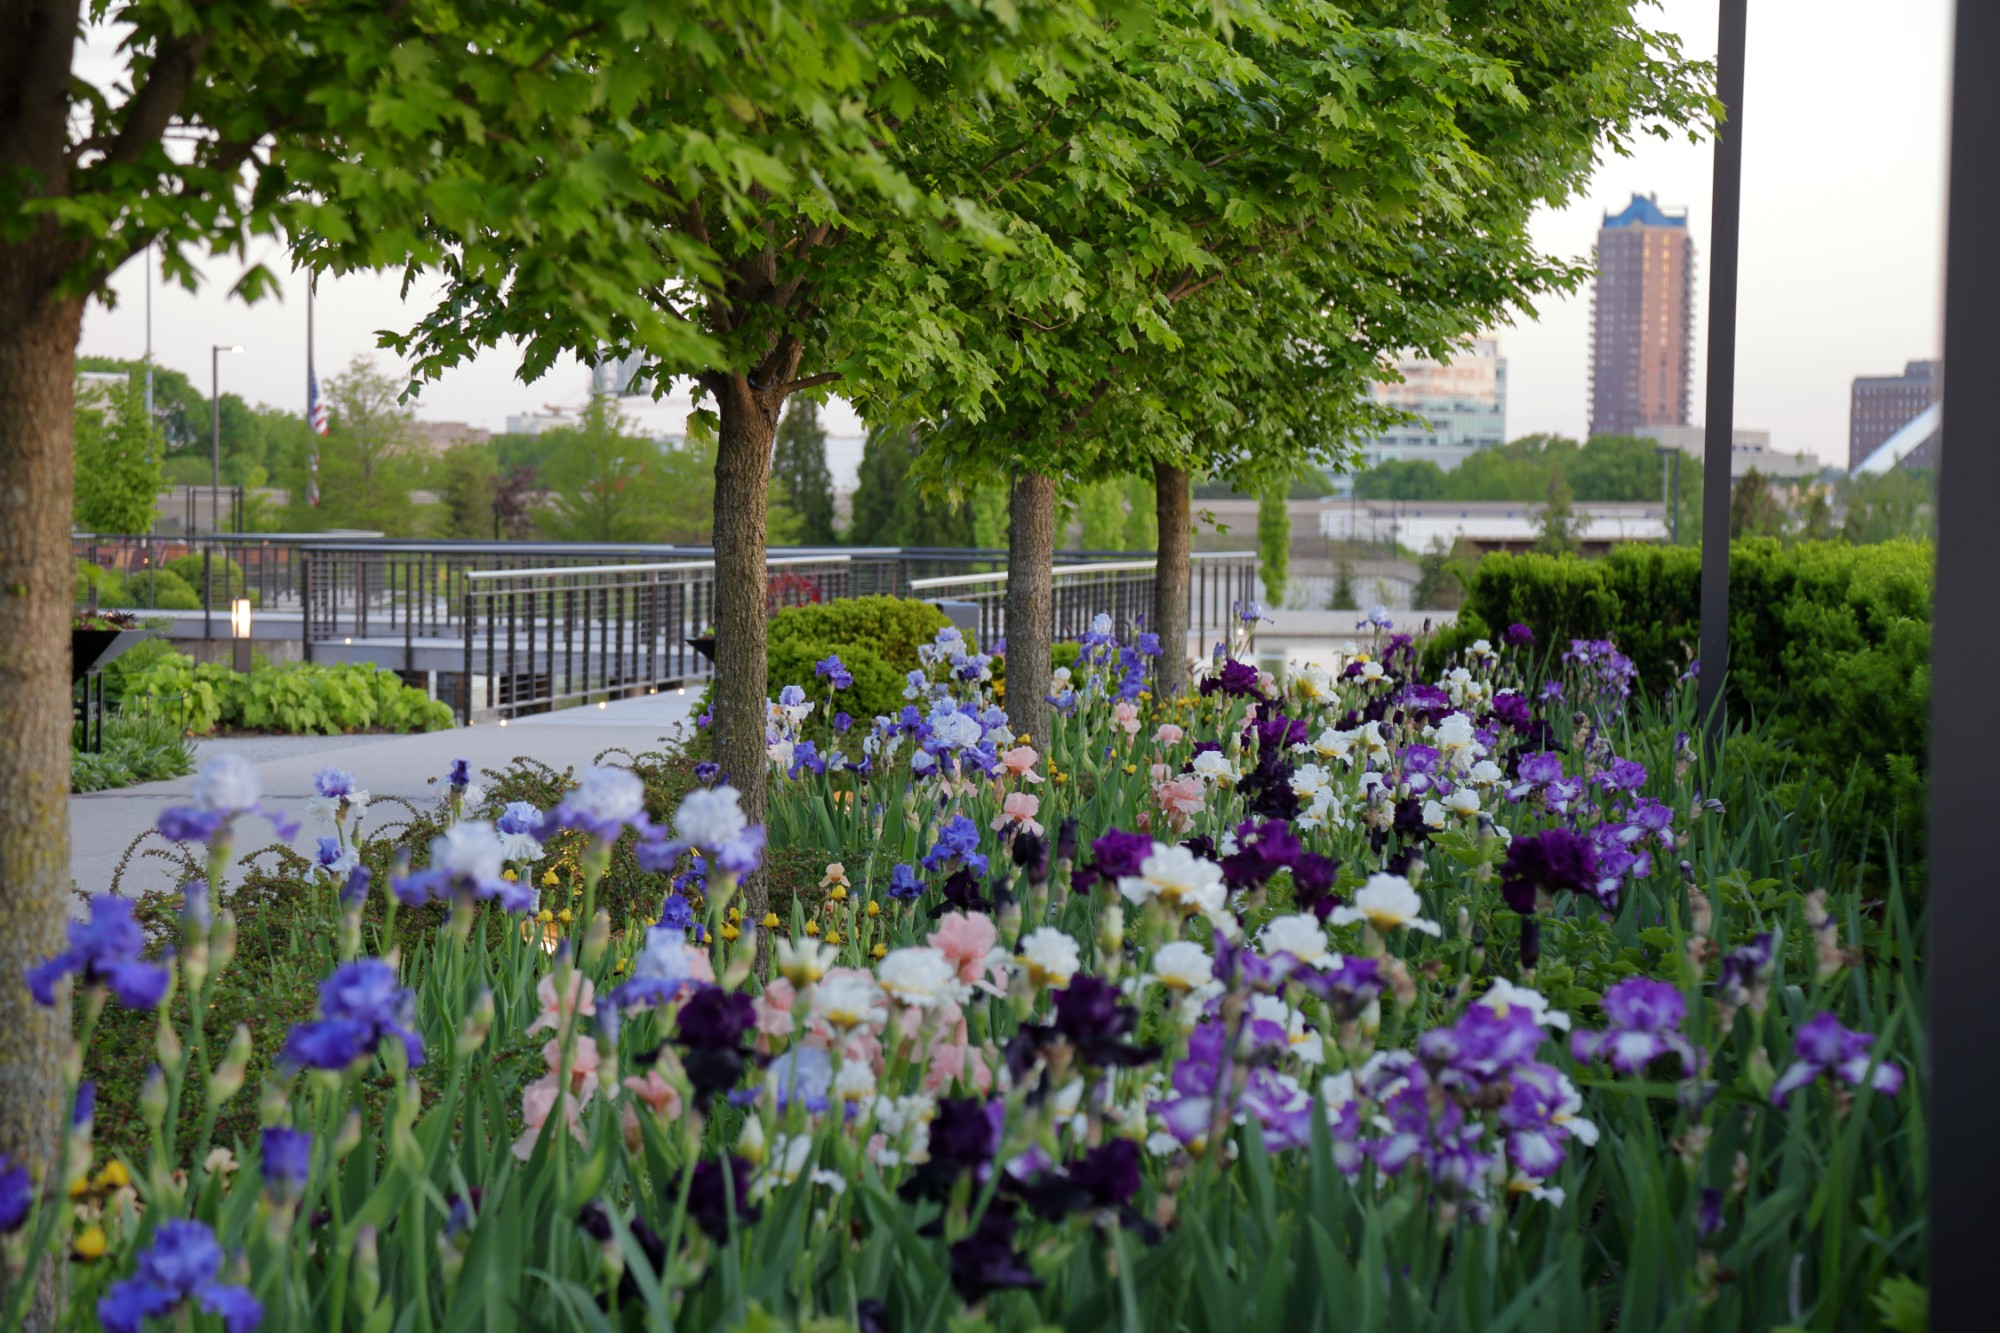 Bearded irises along the Ruan Allee. Photo by Kelly Norris.